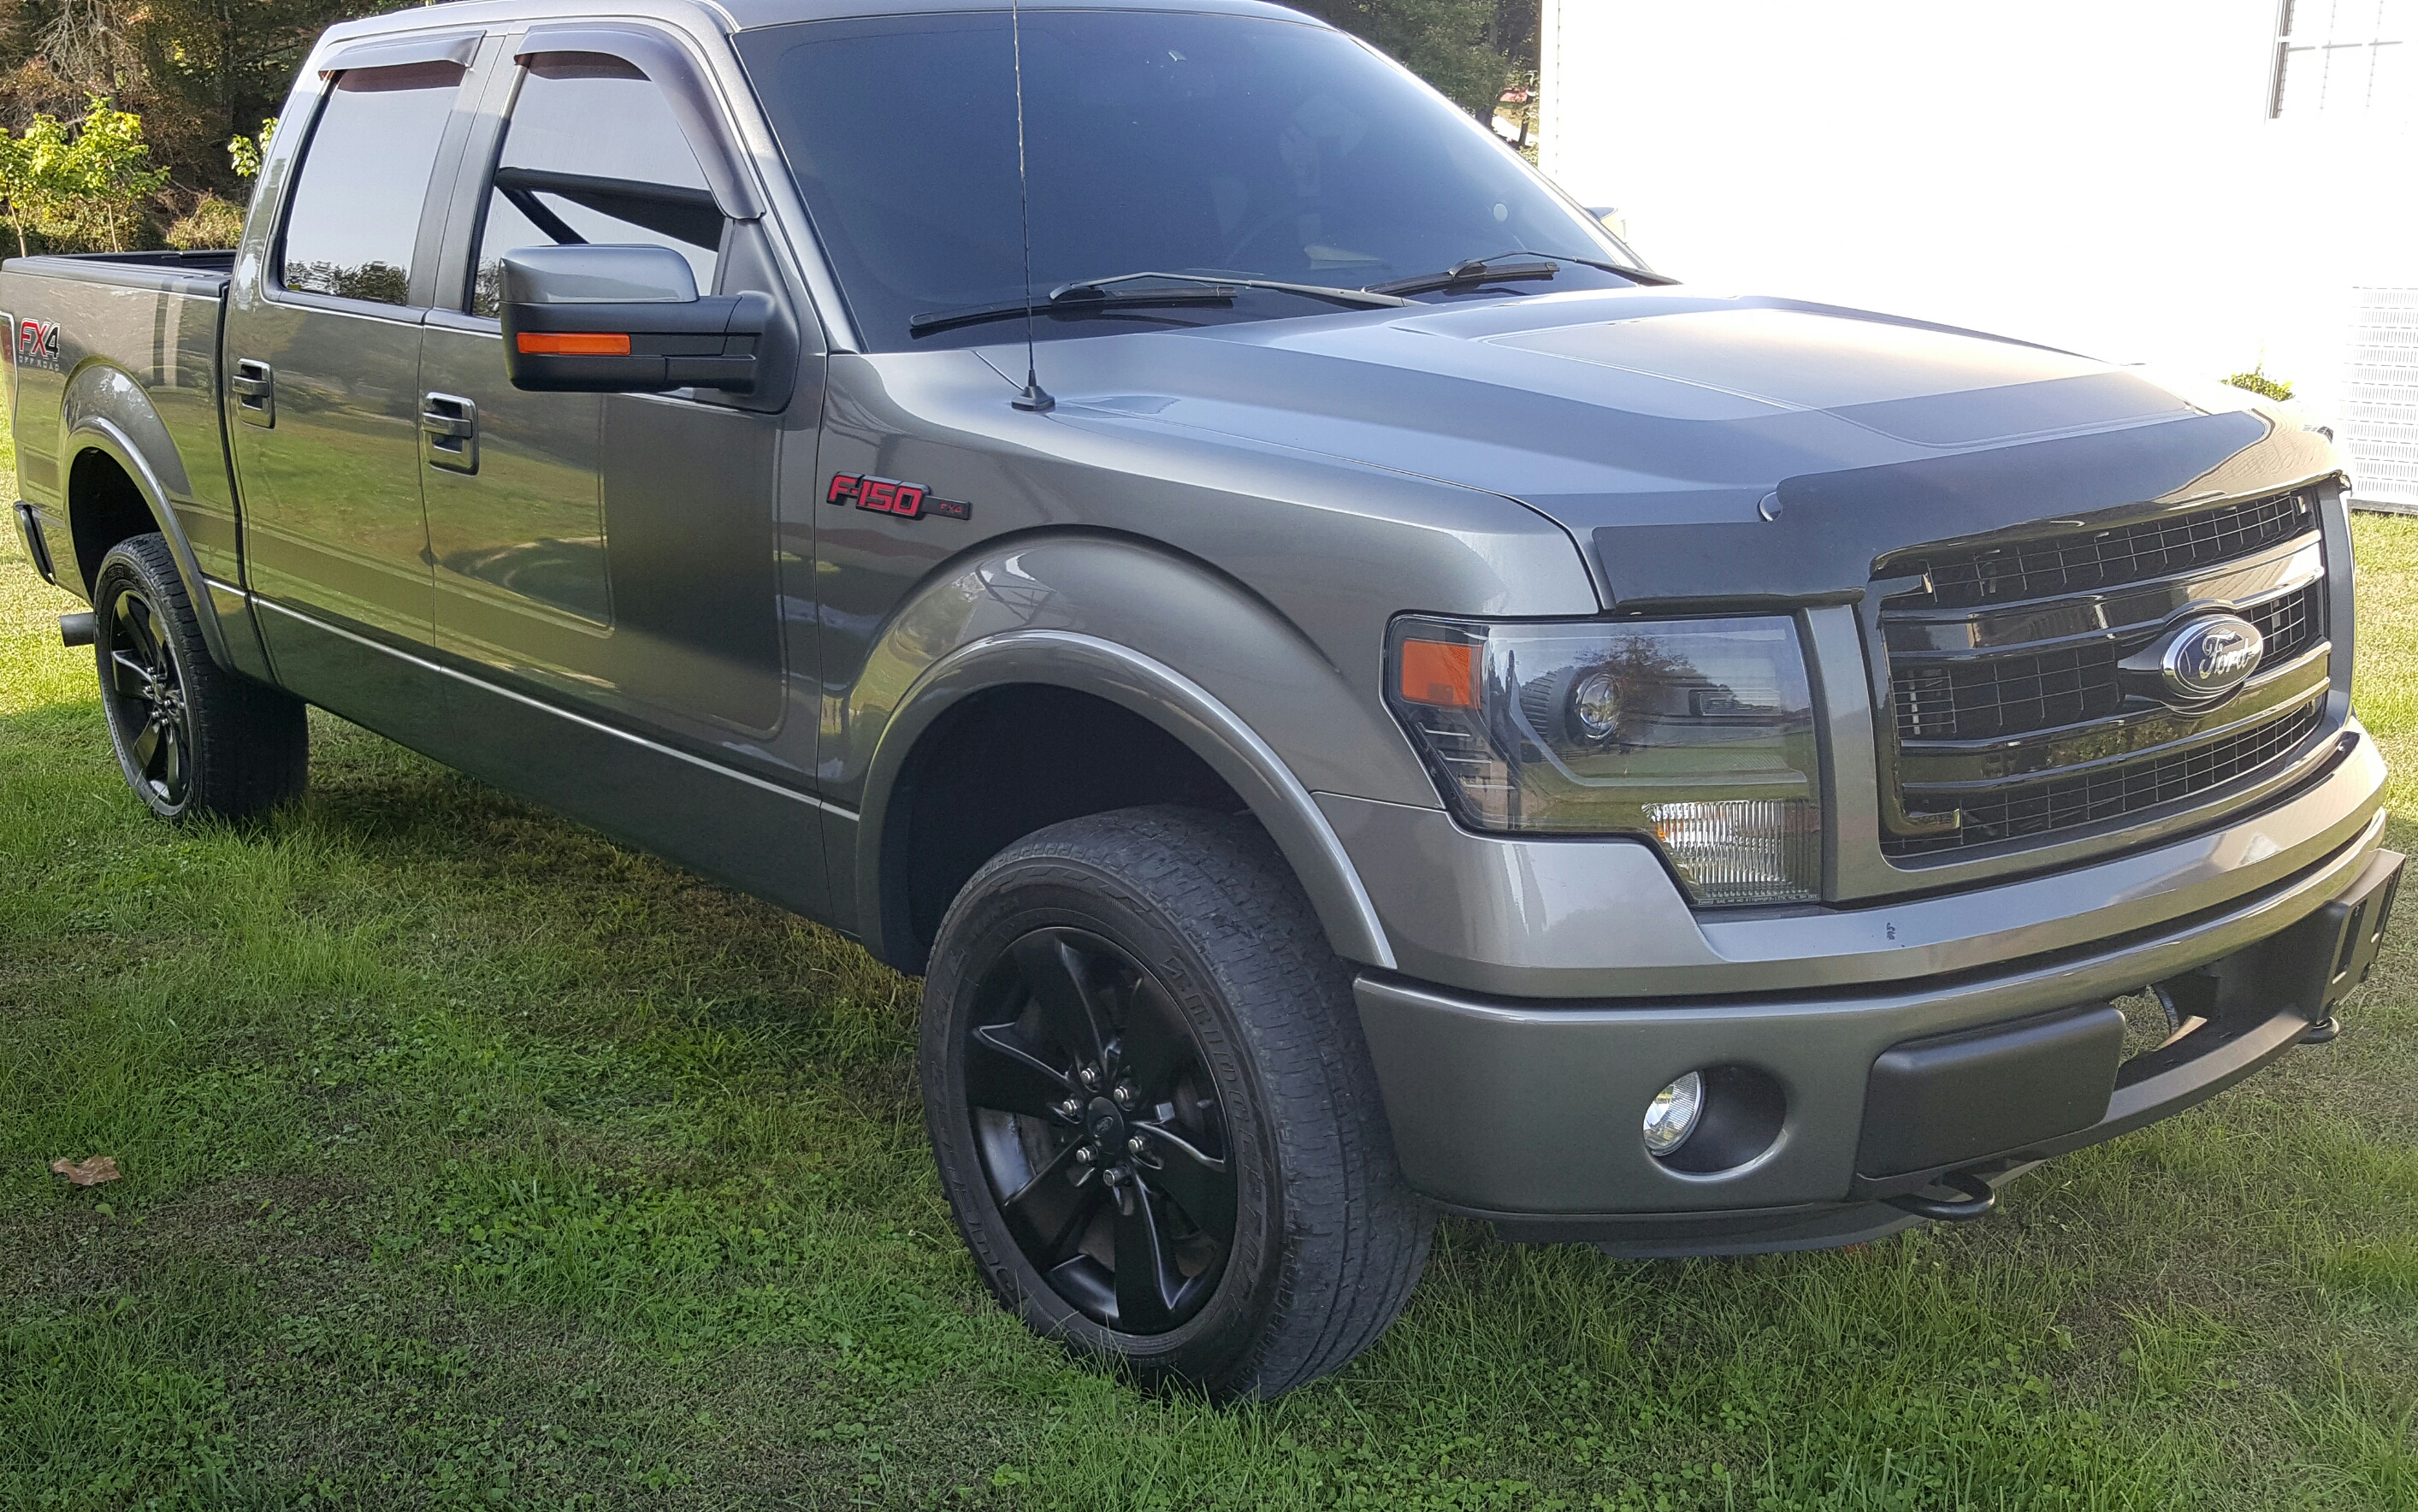 2013 F150 Fx4 >> For Sale - 2013 Ford f150 FX4 Super Crew Ecoboost-LOADED! $30995 | Trap Shooters Forum